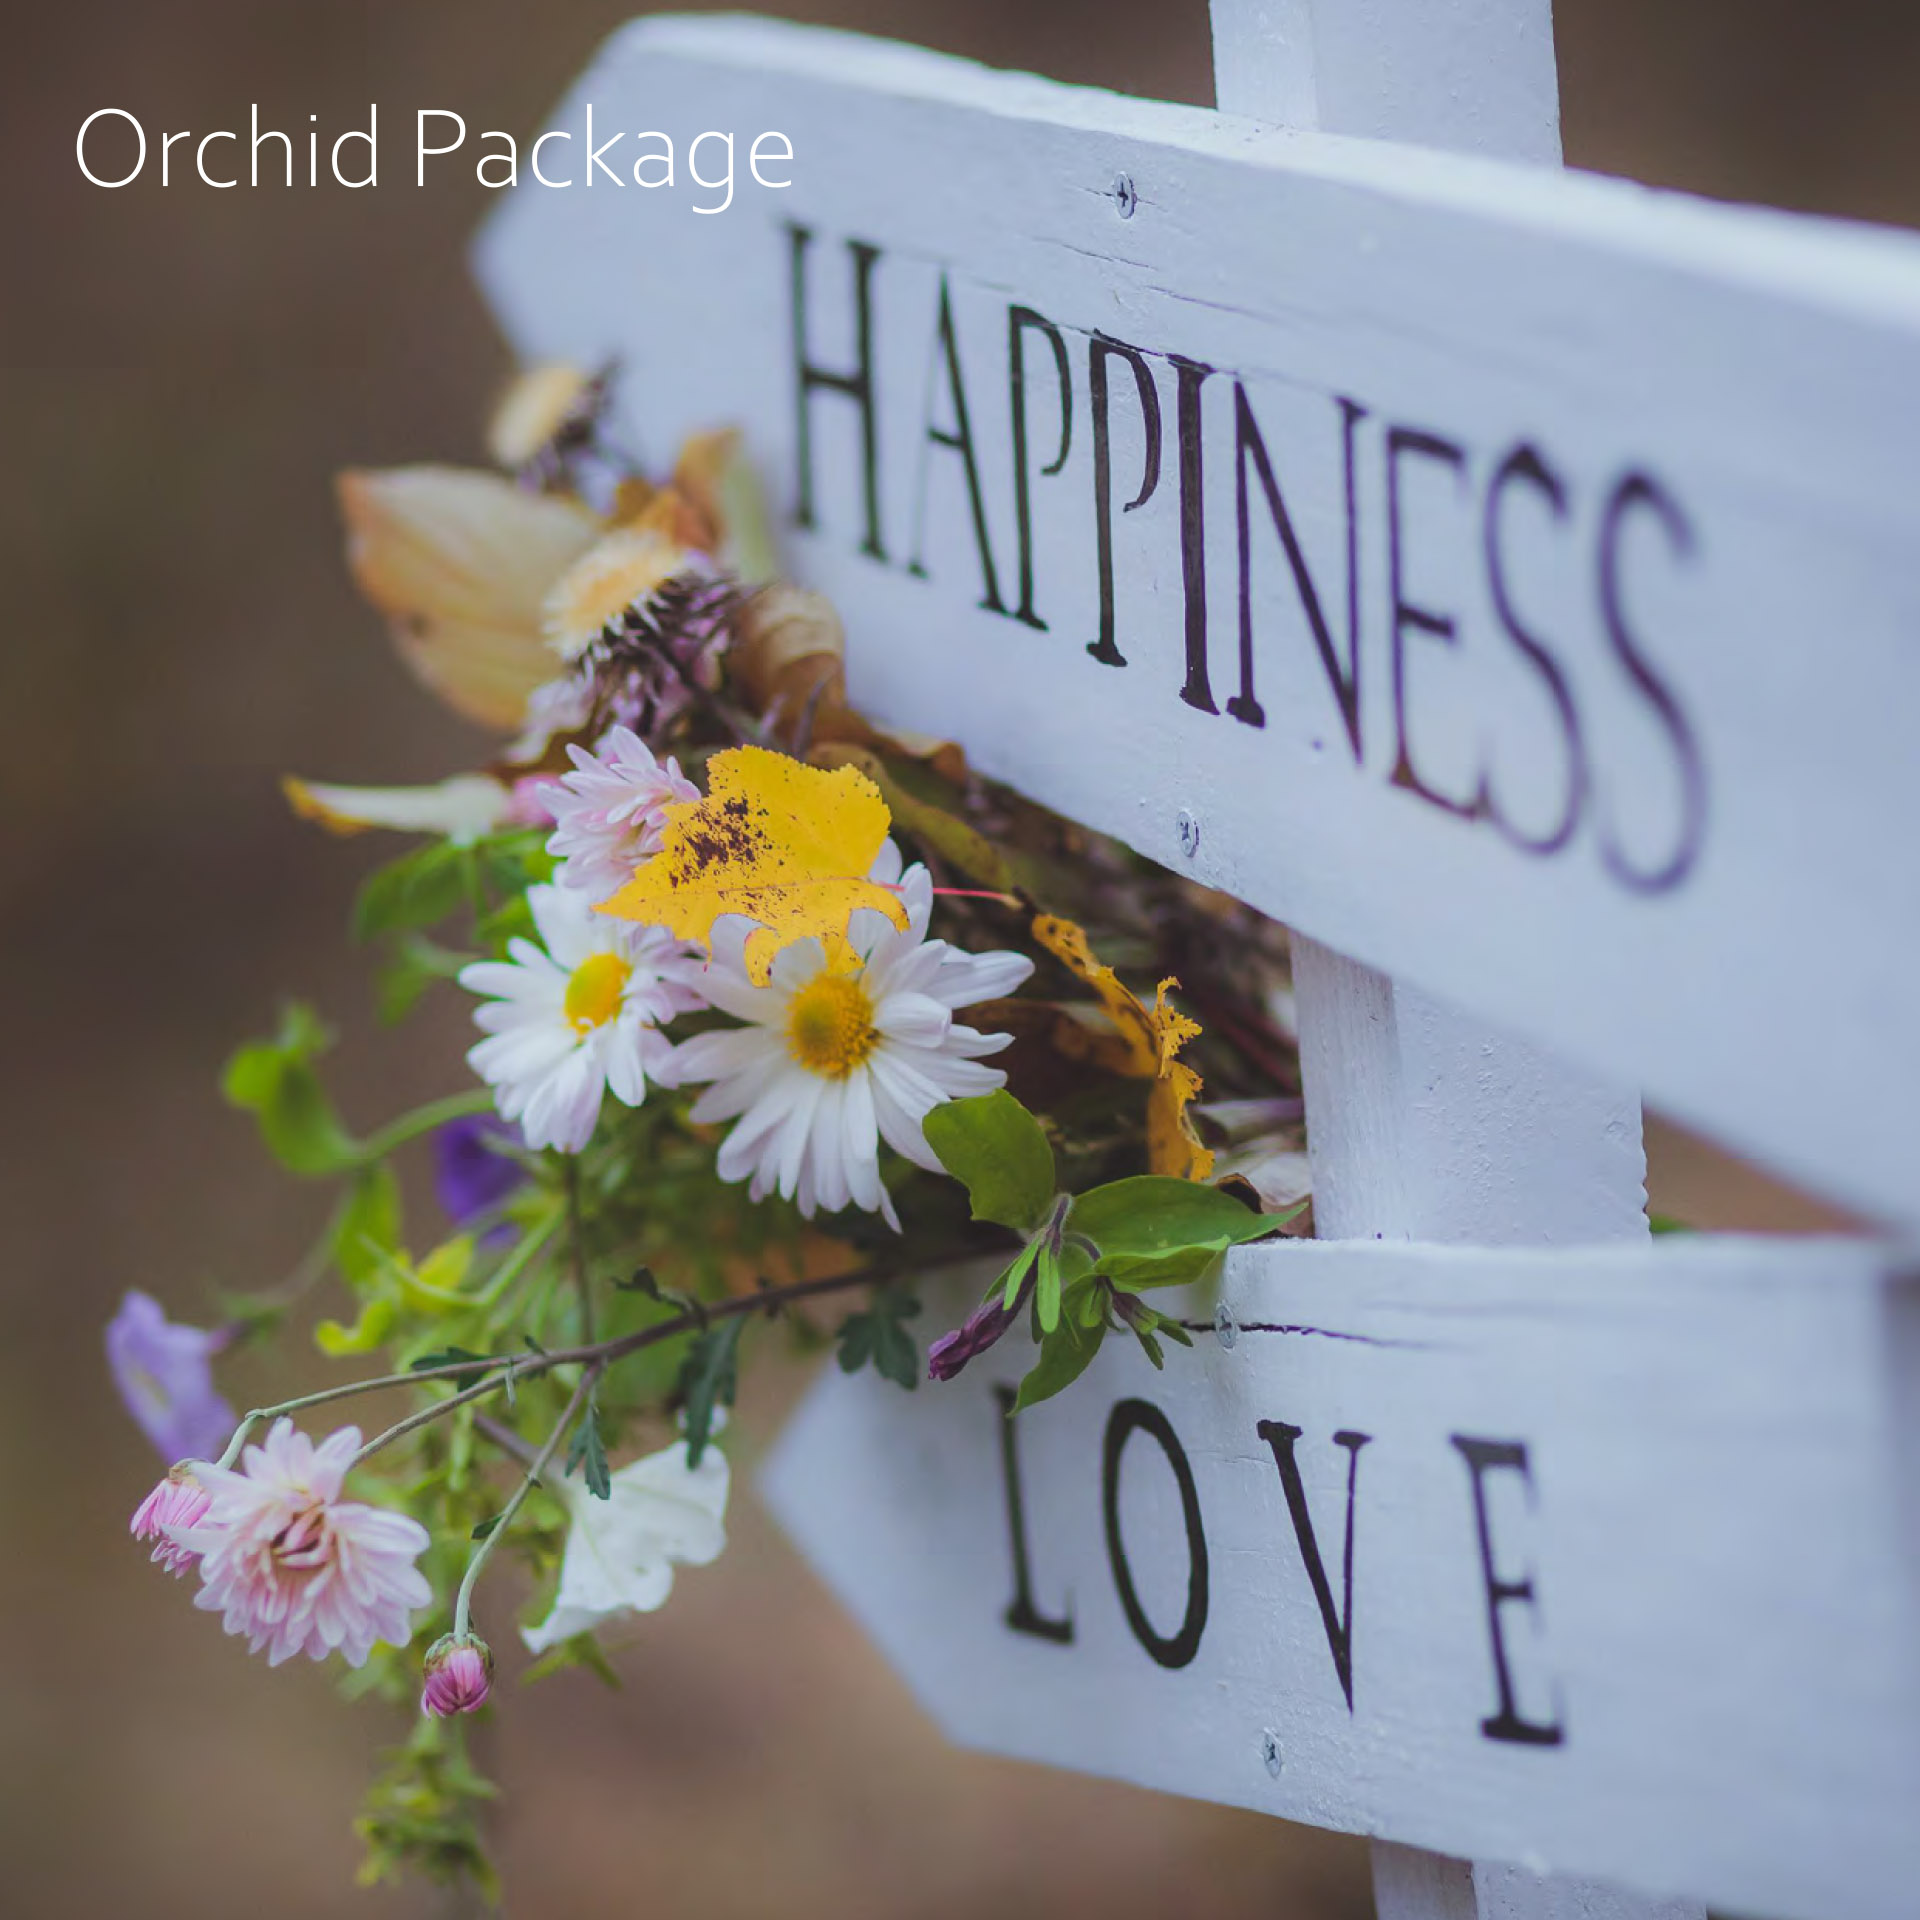 Orchid Wedding Package at the Charlecote Pheasant Hotel